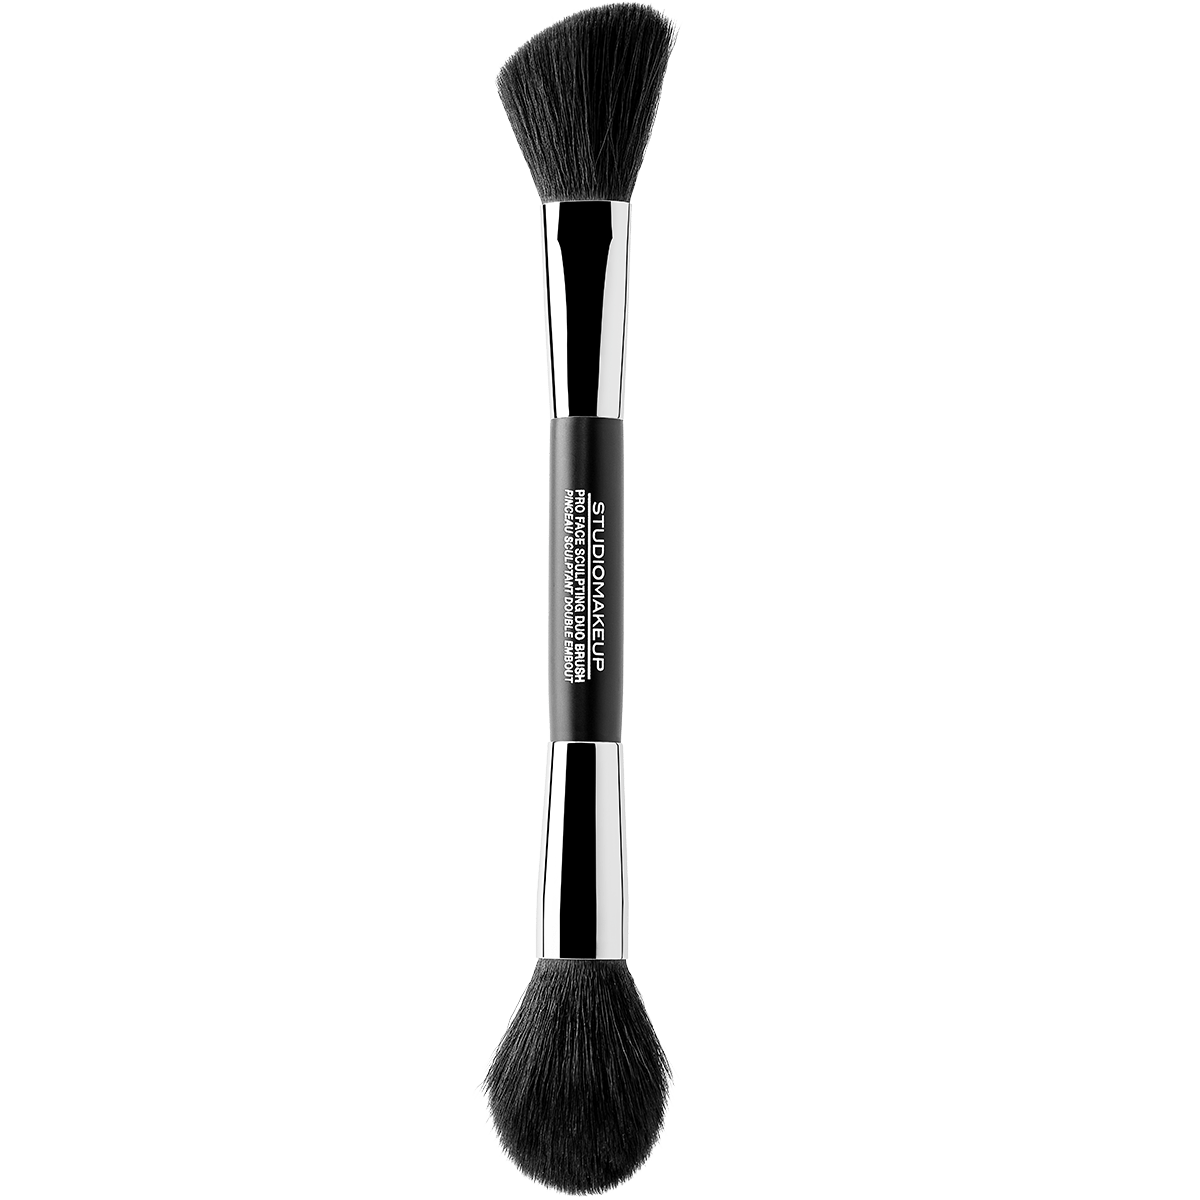 PRO FACE SCULPTING DUO BRUSH - Studio Make Up US